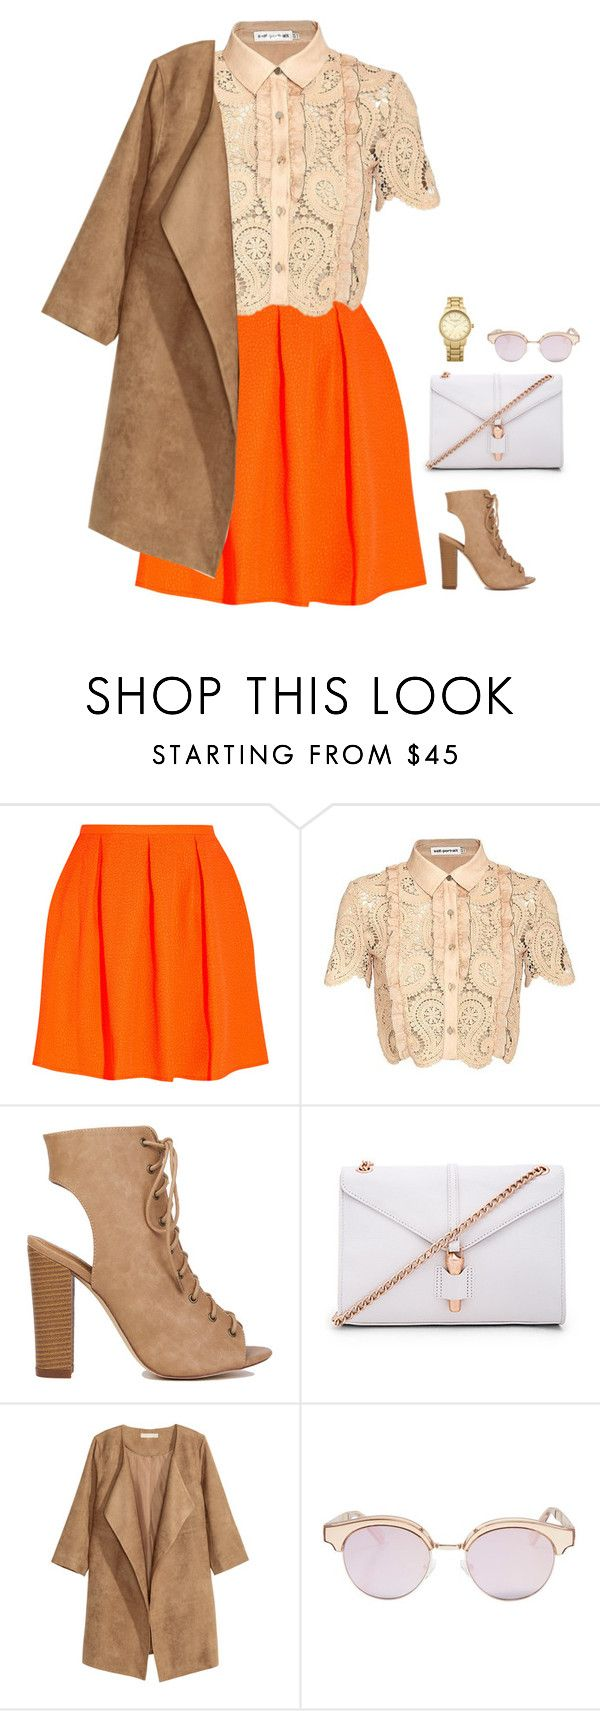 """""""#2835"""" by azaliyan ❤ liked on Polyvore featuring Opening Ceremony, self-portrait, Foley + Corinna, Le Specs and Topshop"""